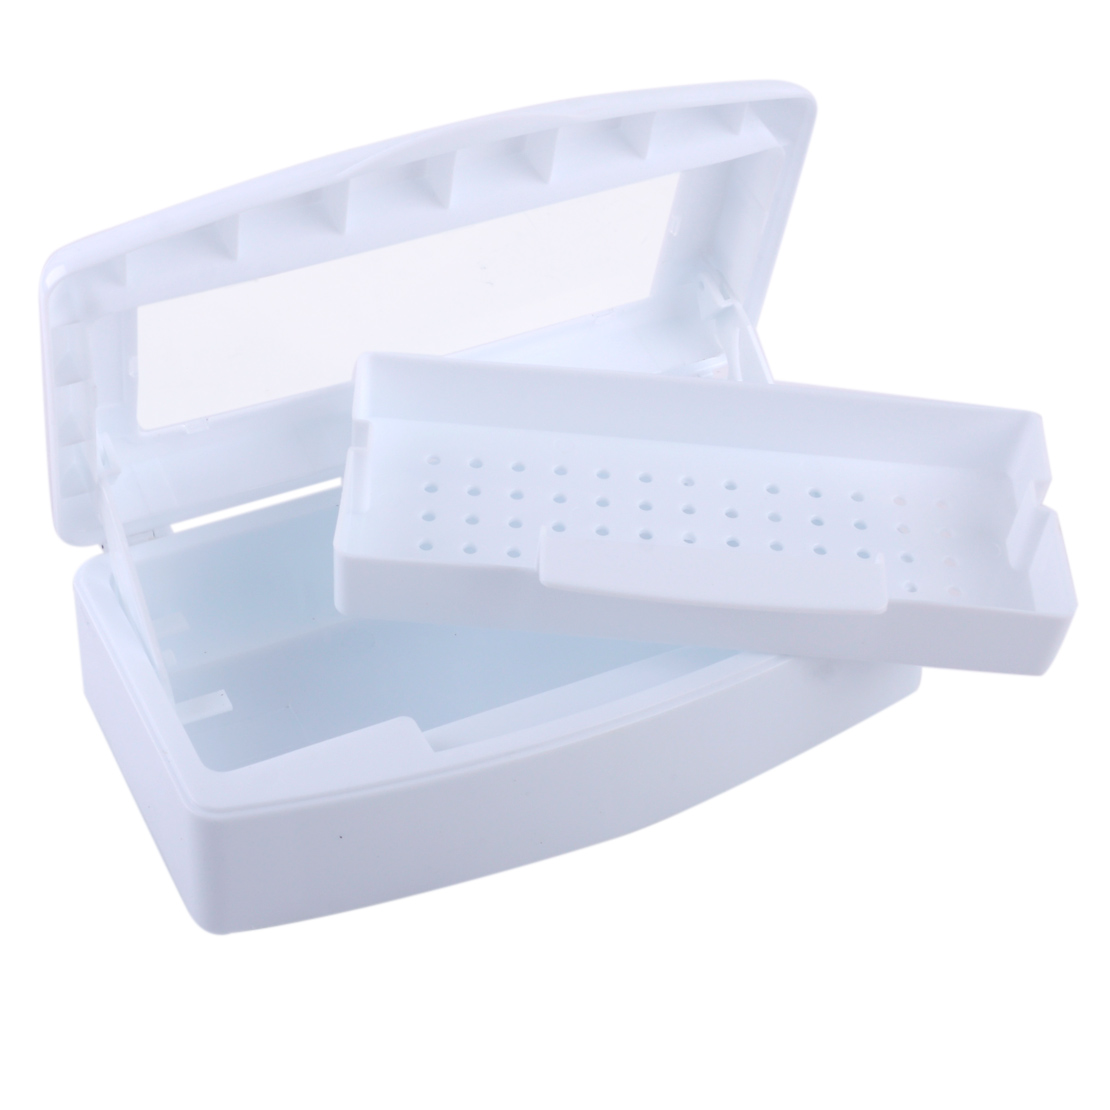 Nail Art Tool Sterilizer Tray Box Clean Disinfection Salon Manicure ...